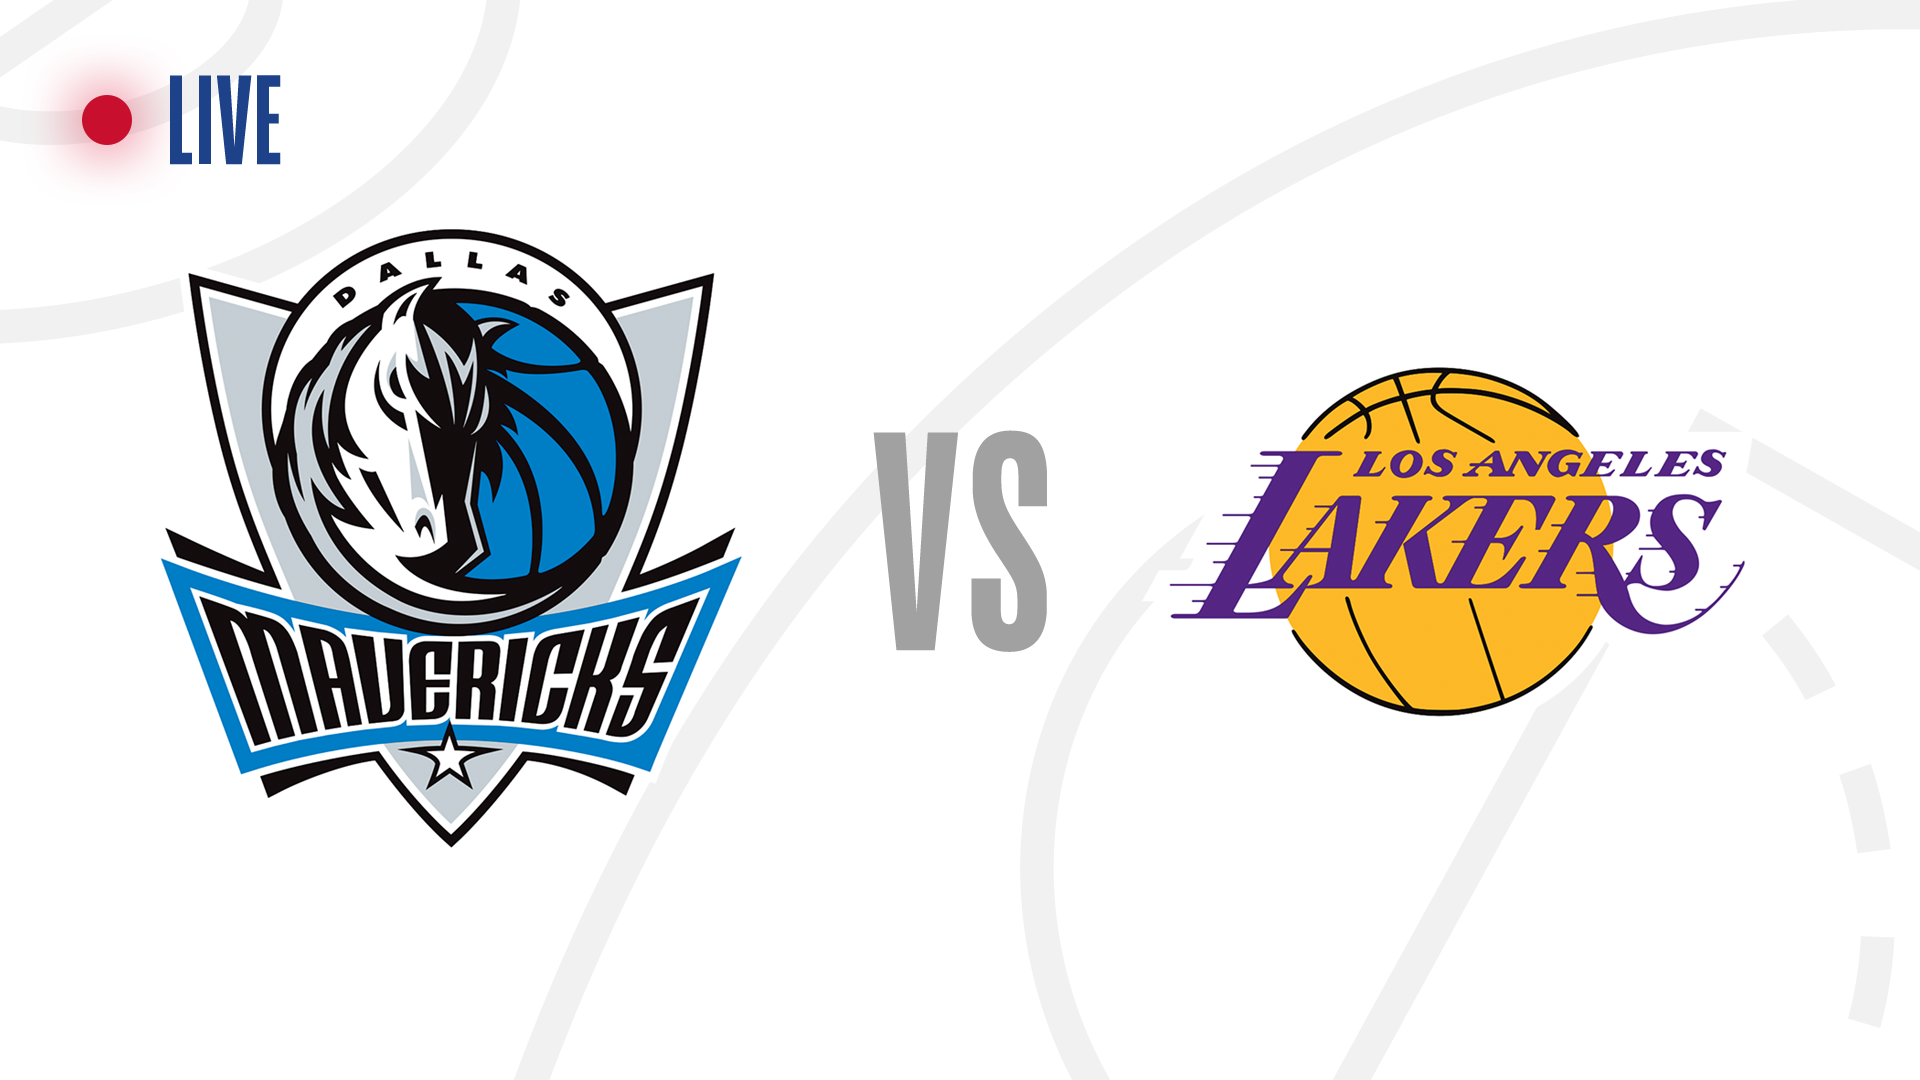 Dallas Mavericks vs. the Los Angeles Lakers